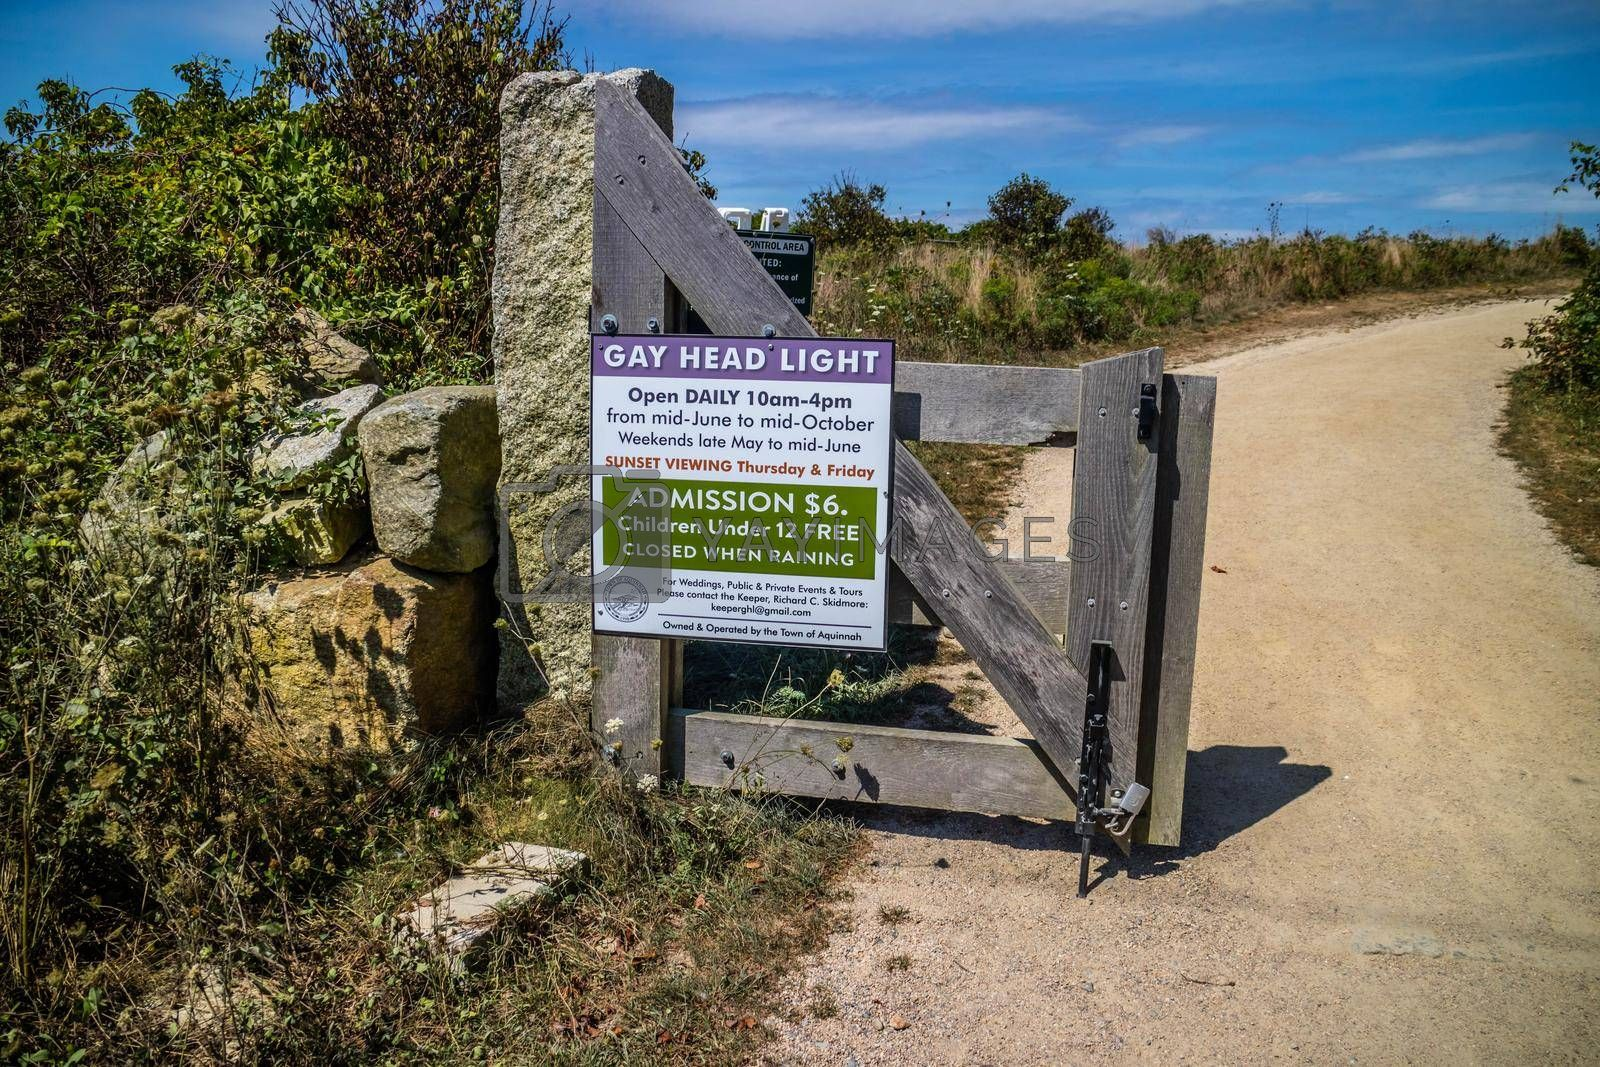 Royalty free image of Cape Cod Marthas Vineyard, MA, USA - Sept 4, 2018: A welcoming signboard at the entry point the lighthouse by cherialguire